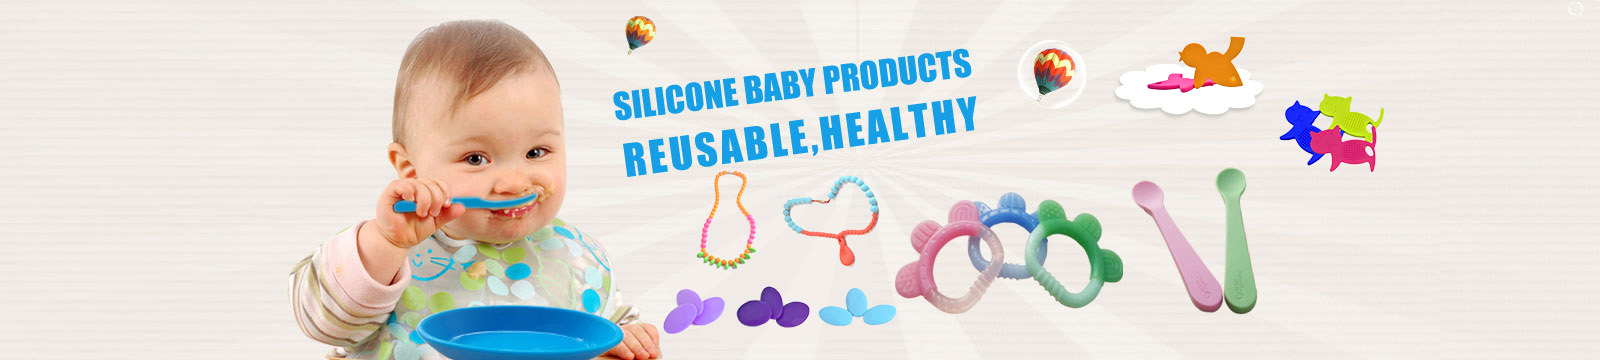 Silicone-Baby-Products